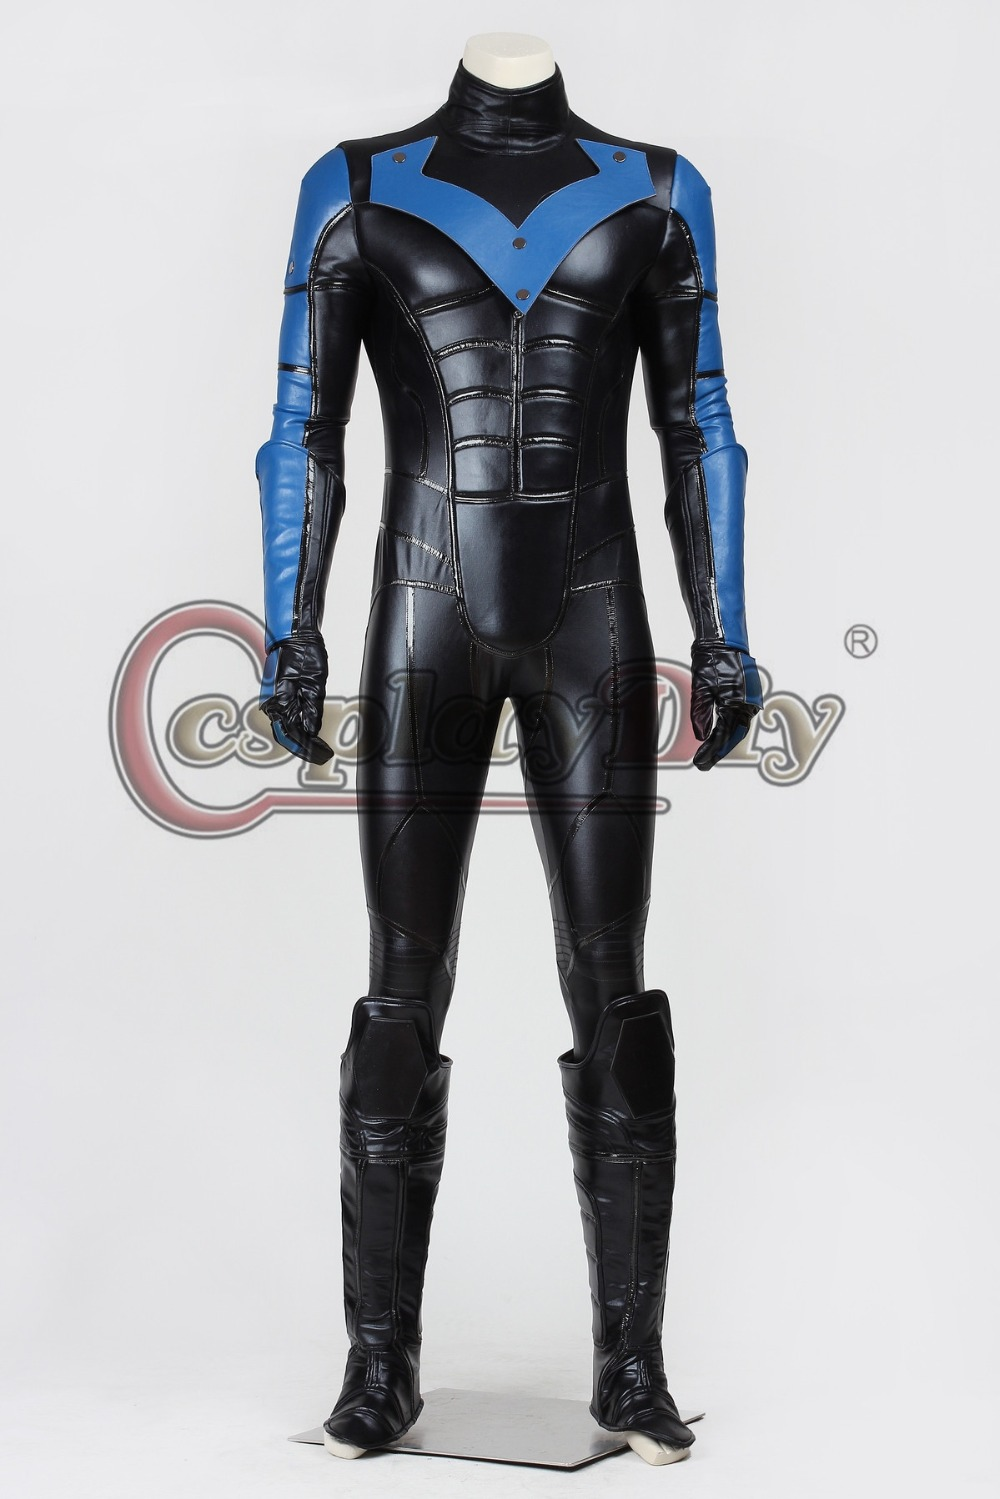 Custom Made Batman Costume Batman Arkham City Nightwing & Batman Arkham City Batman Costumes - Meningrey